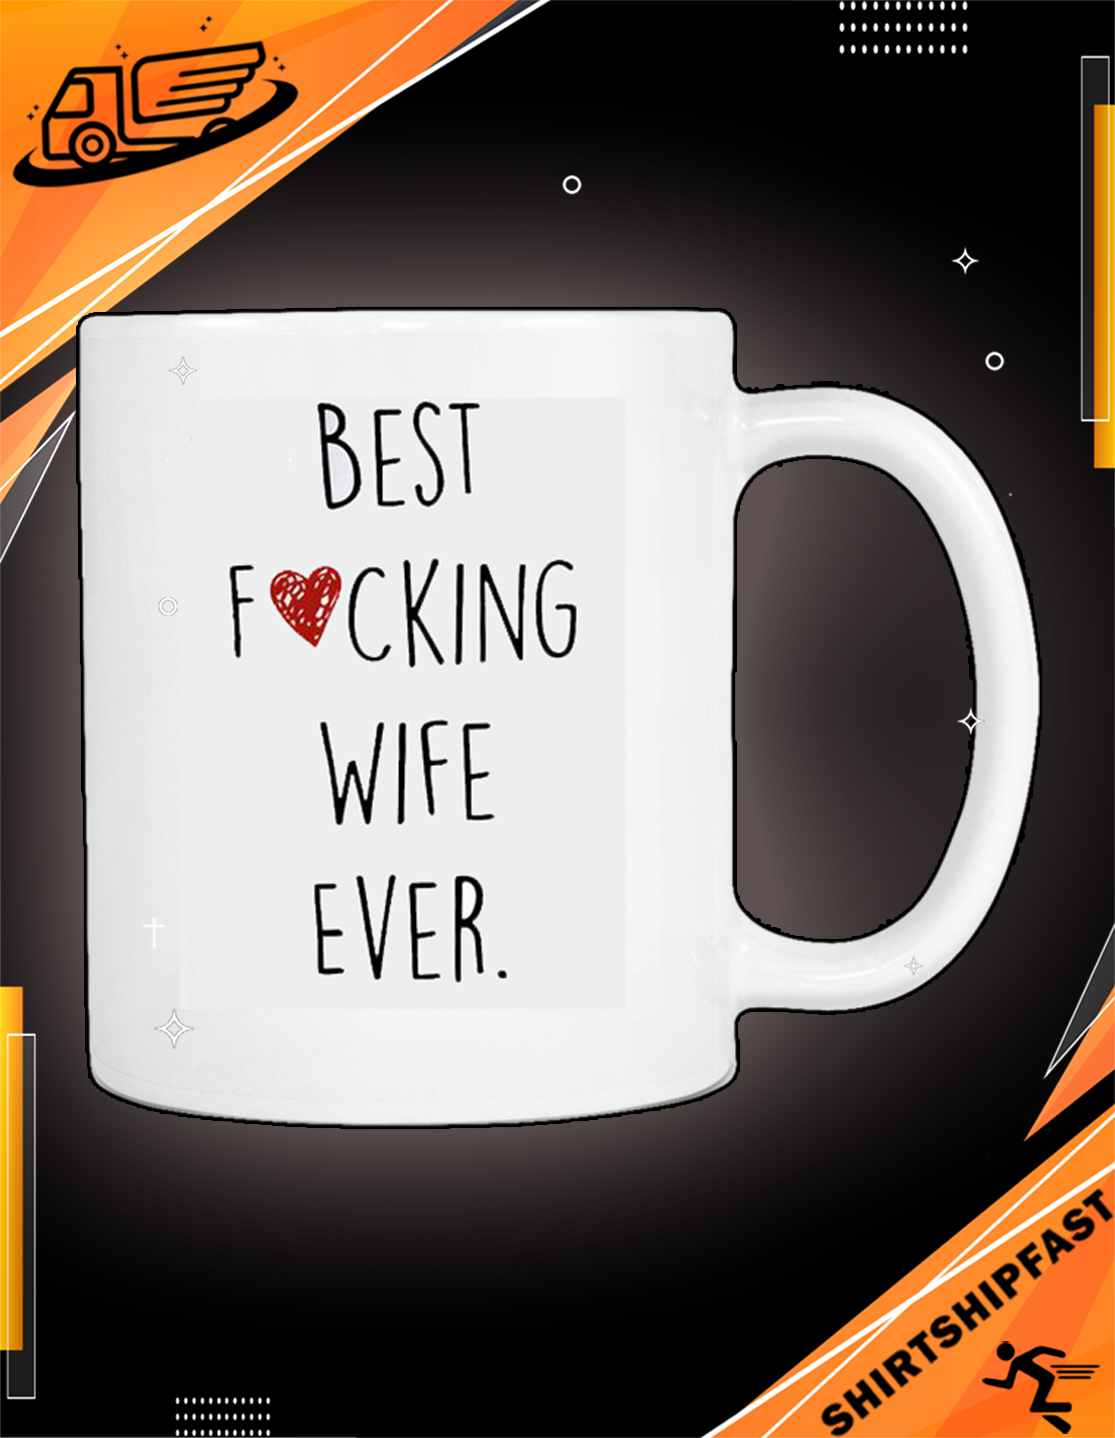 Best fucking wife ever mug - Picture 3